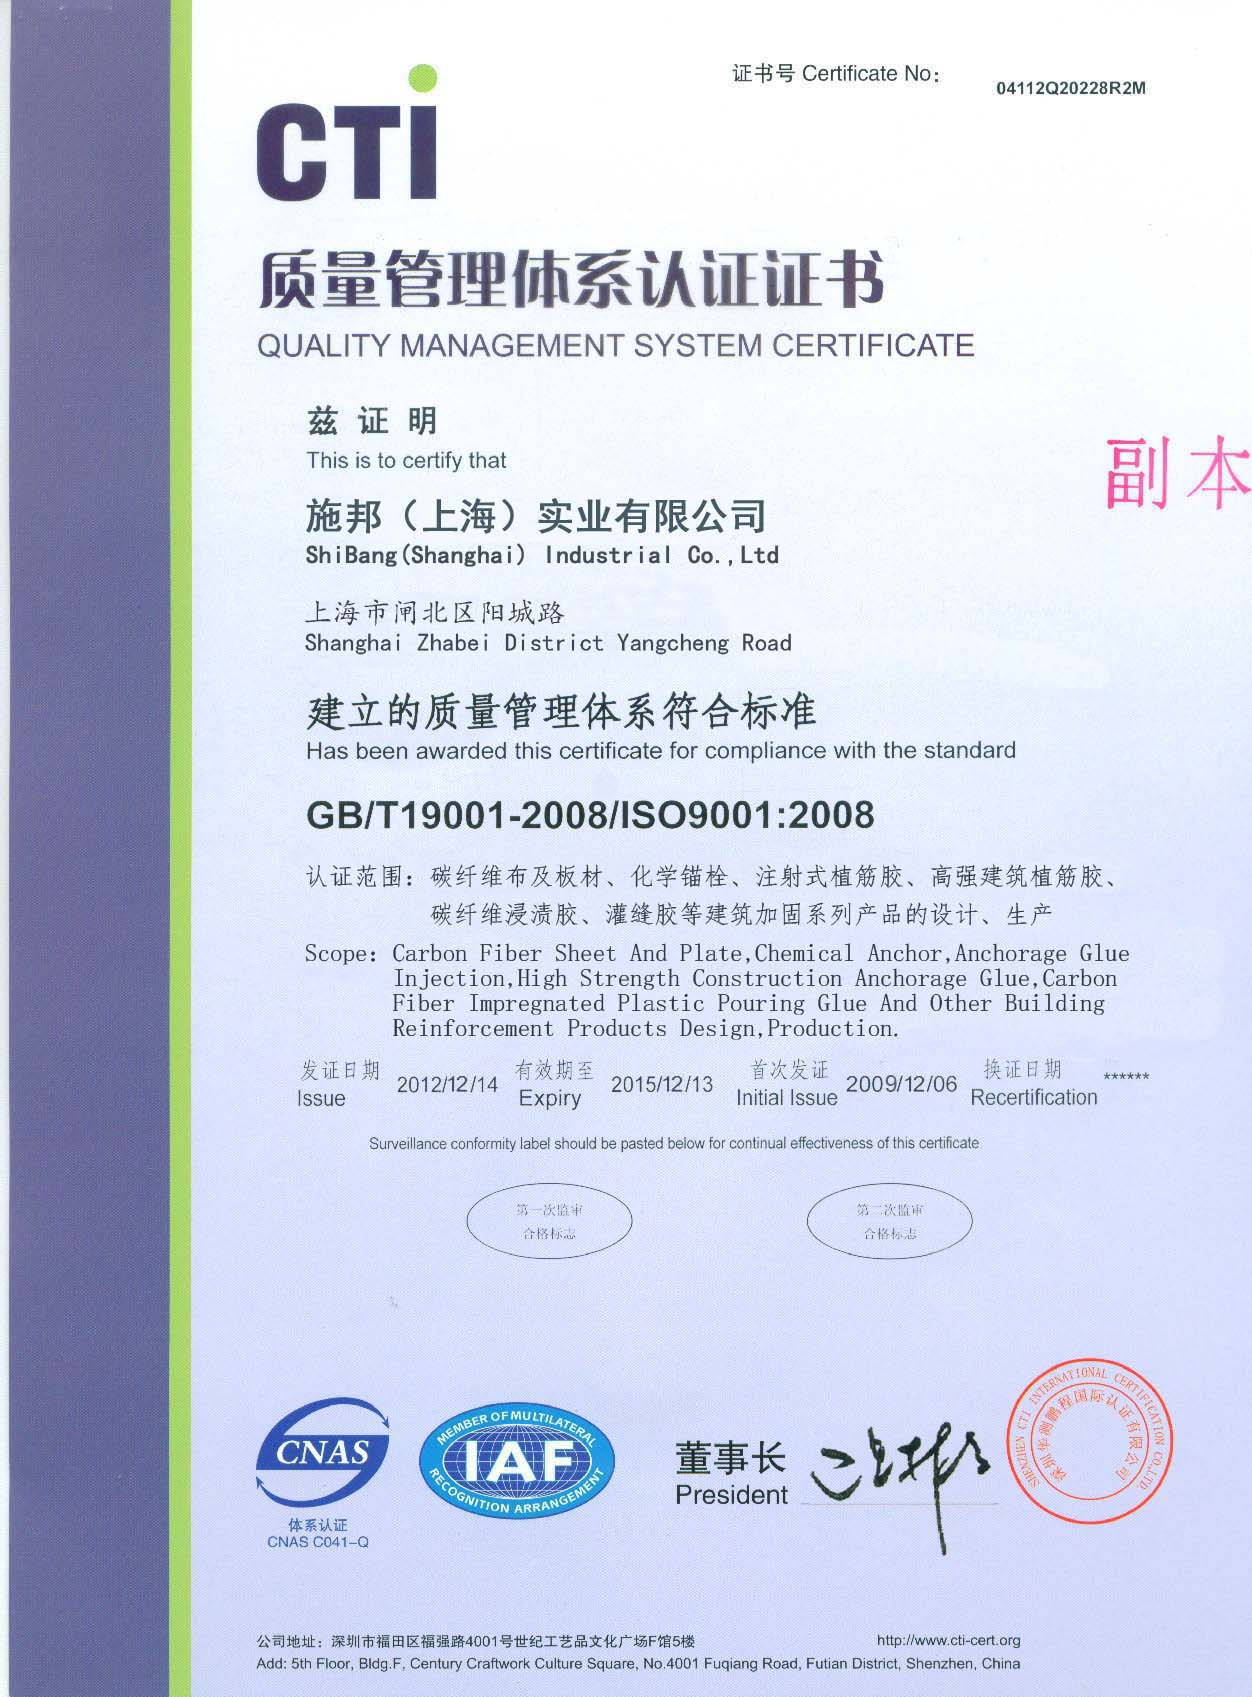 CTI Quality Management System Certification